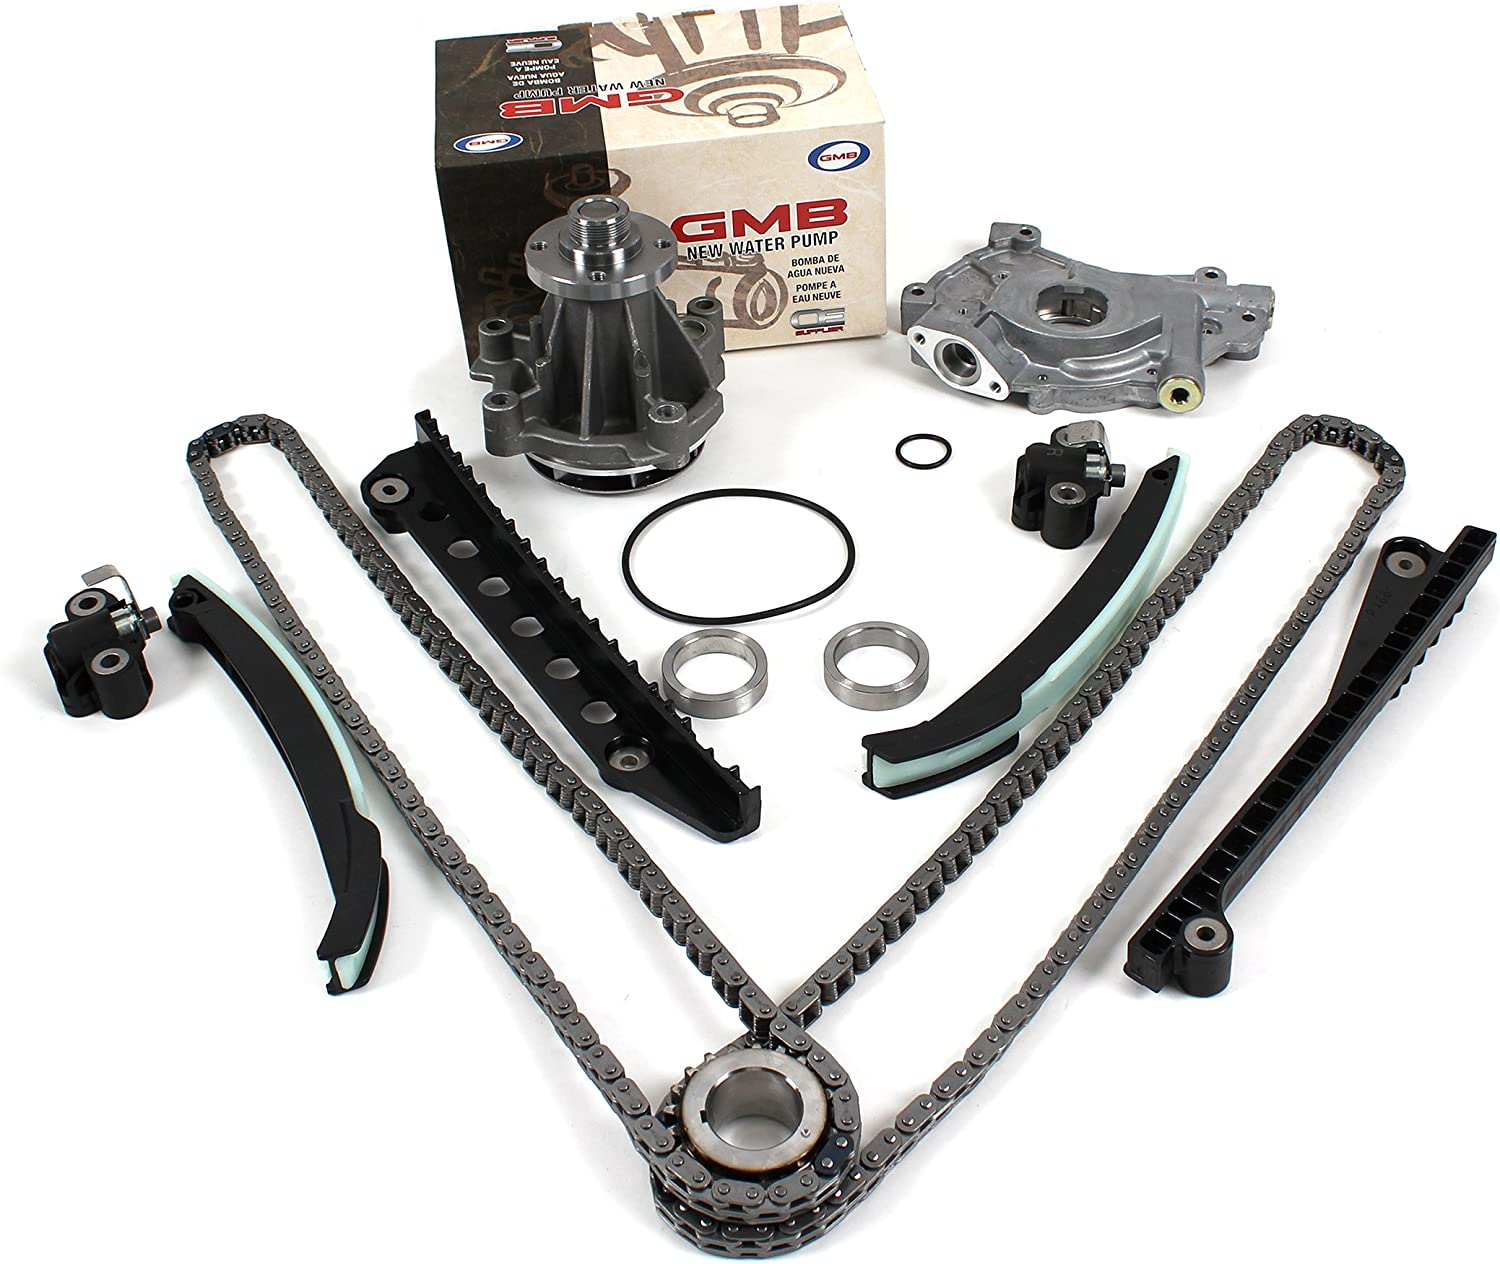 Ford 5.4 F150 F250 Expedition Navigator 3V Upgraded Chain Guides Tensioners